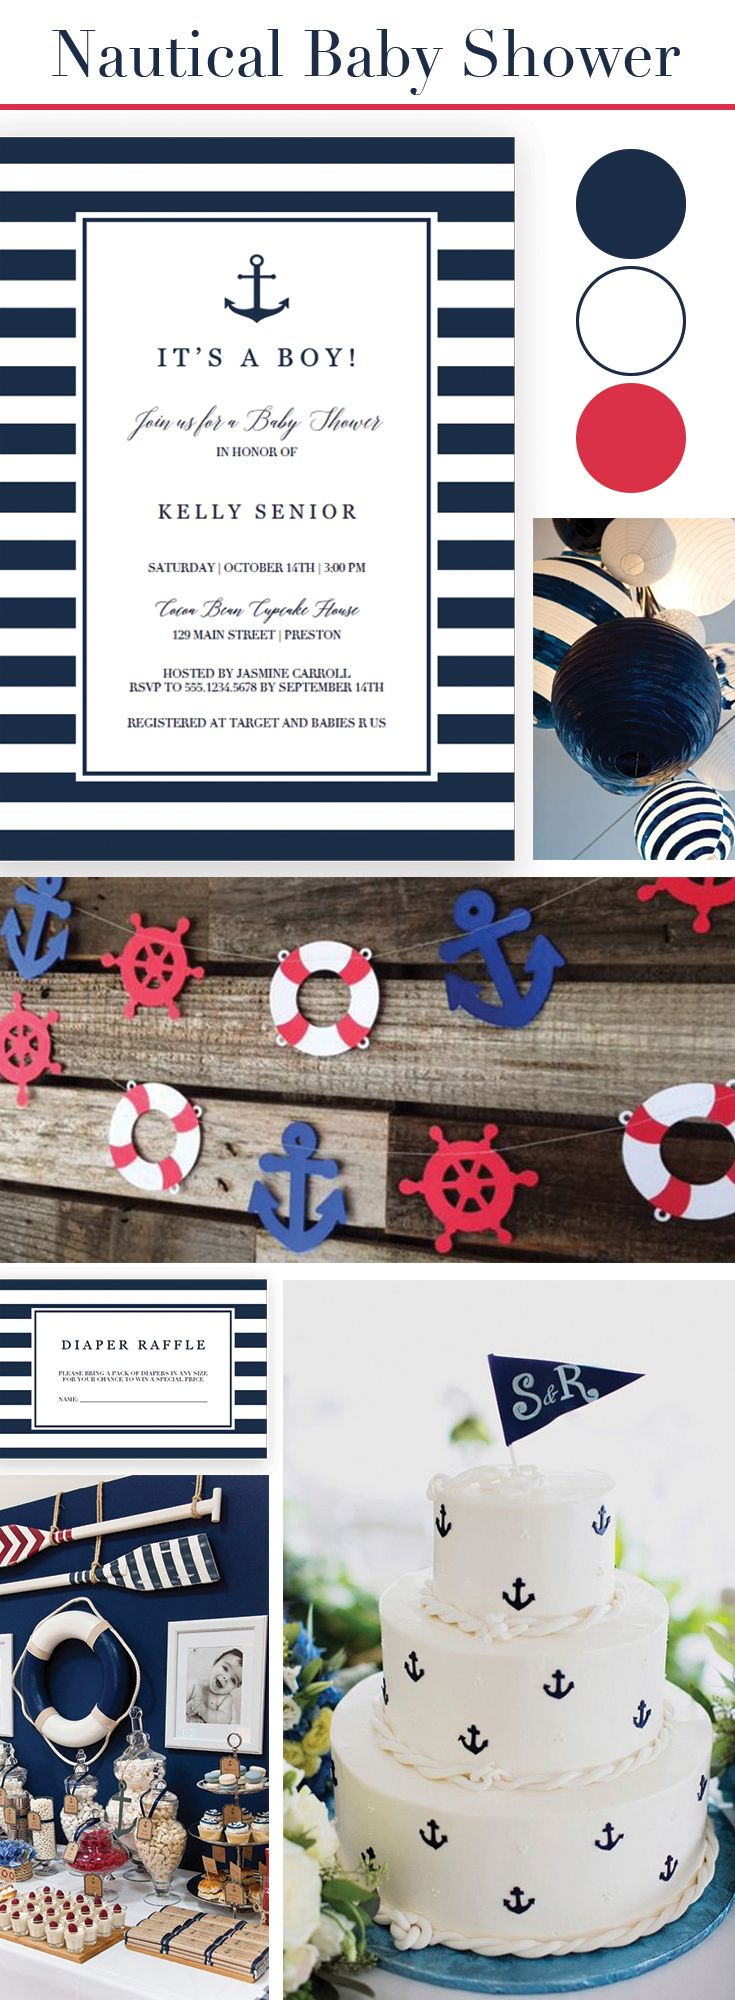 Nautical Baby Shower theme idea for boy. Nautical Baby Shower Invitation Set Navy Stripes. Make the perfect announcement of a baby shower with this nautical baby shower invitation set. Included in the set are the Invitation, a Diaper Raffle ticket and a Bring-a-Book request card. Personalize the items with your own words. Simply download, edit and print!